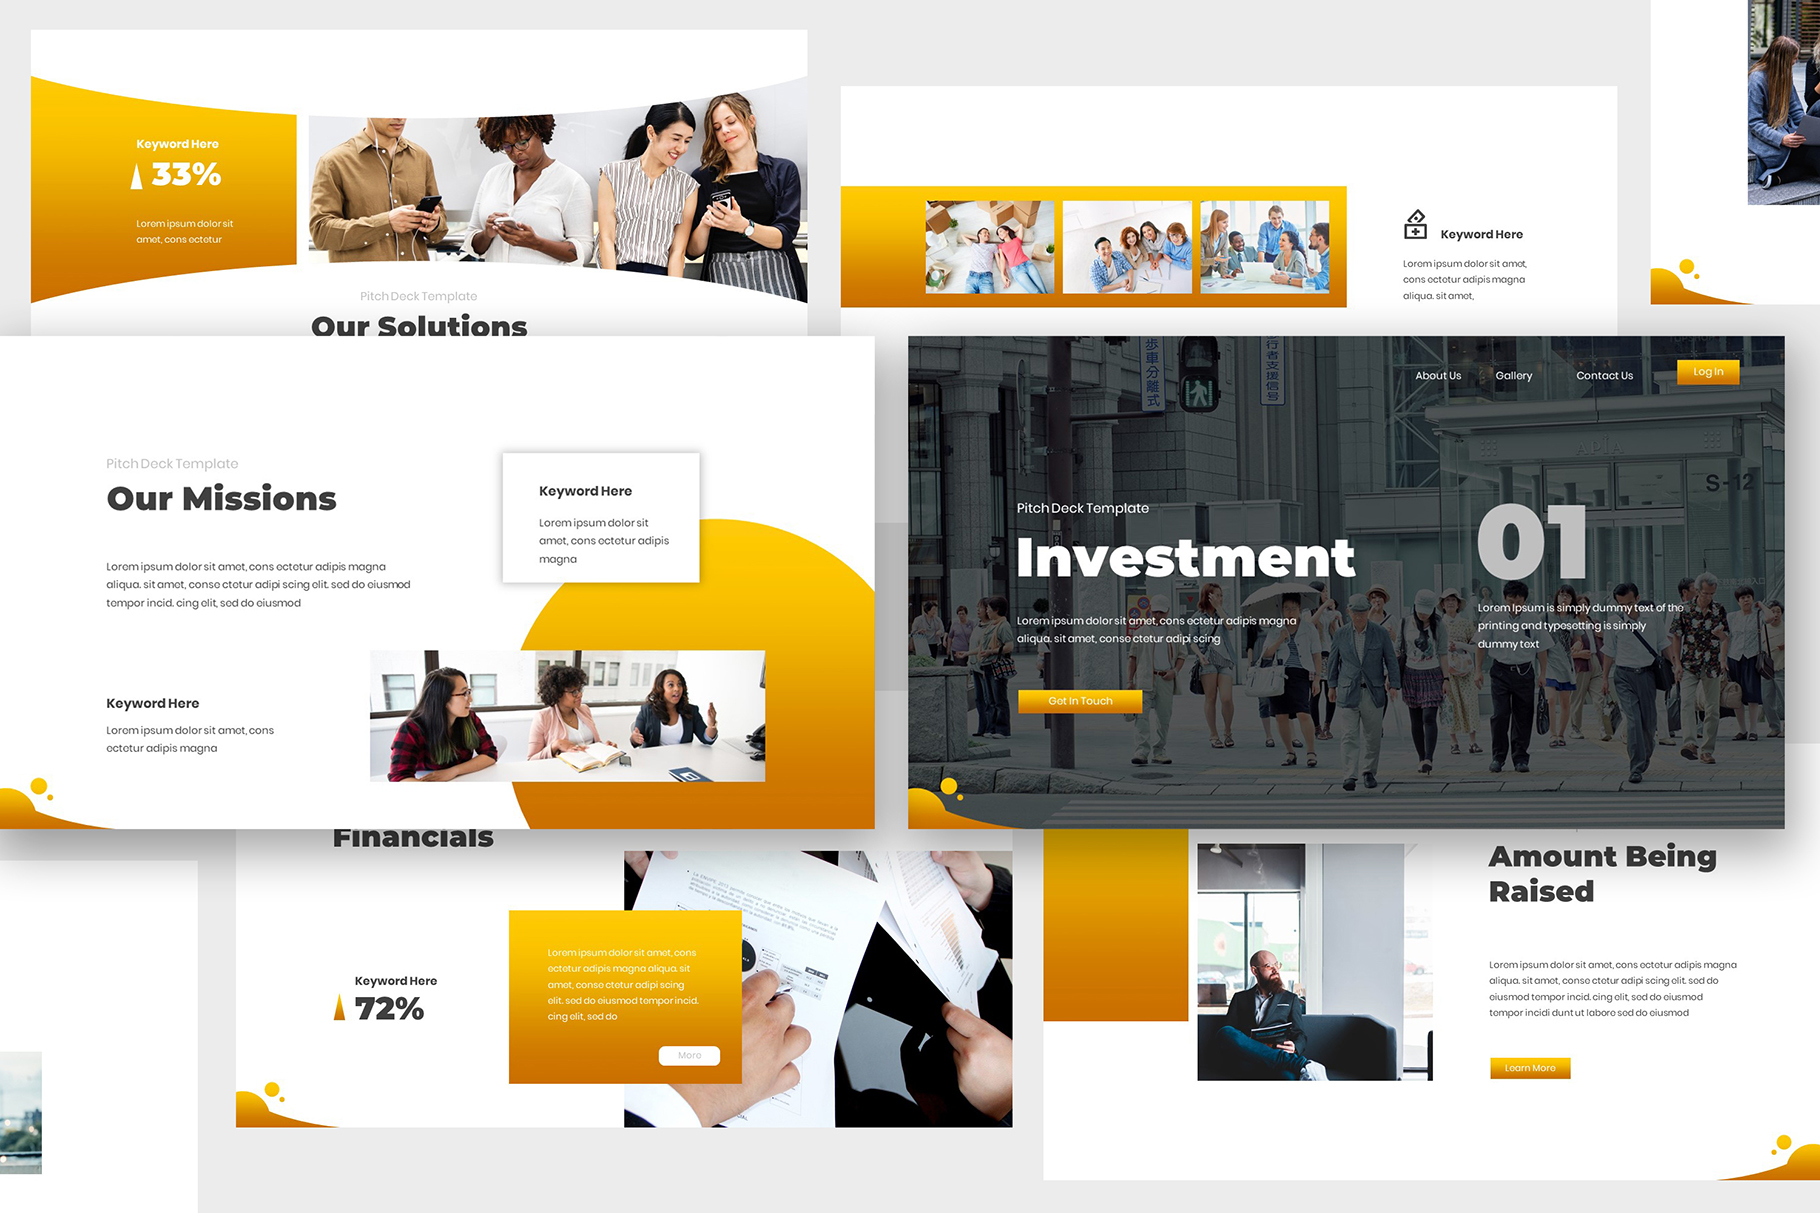 Investment Pitch Deck Powerpoint example image 2